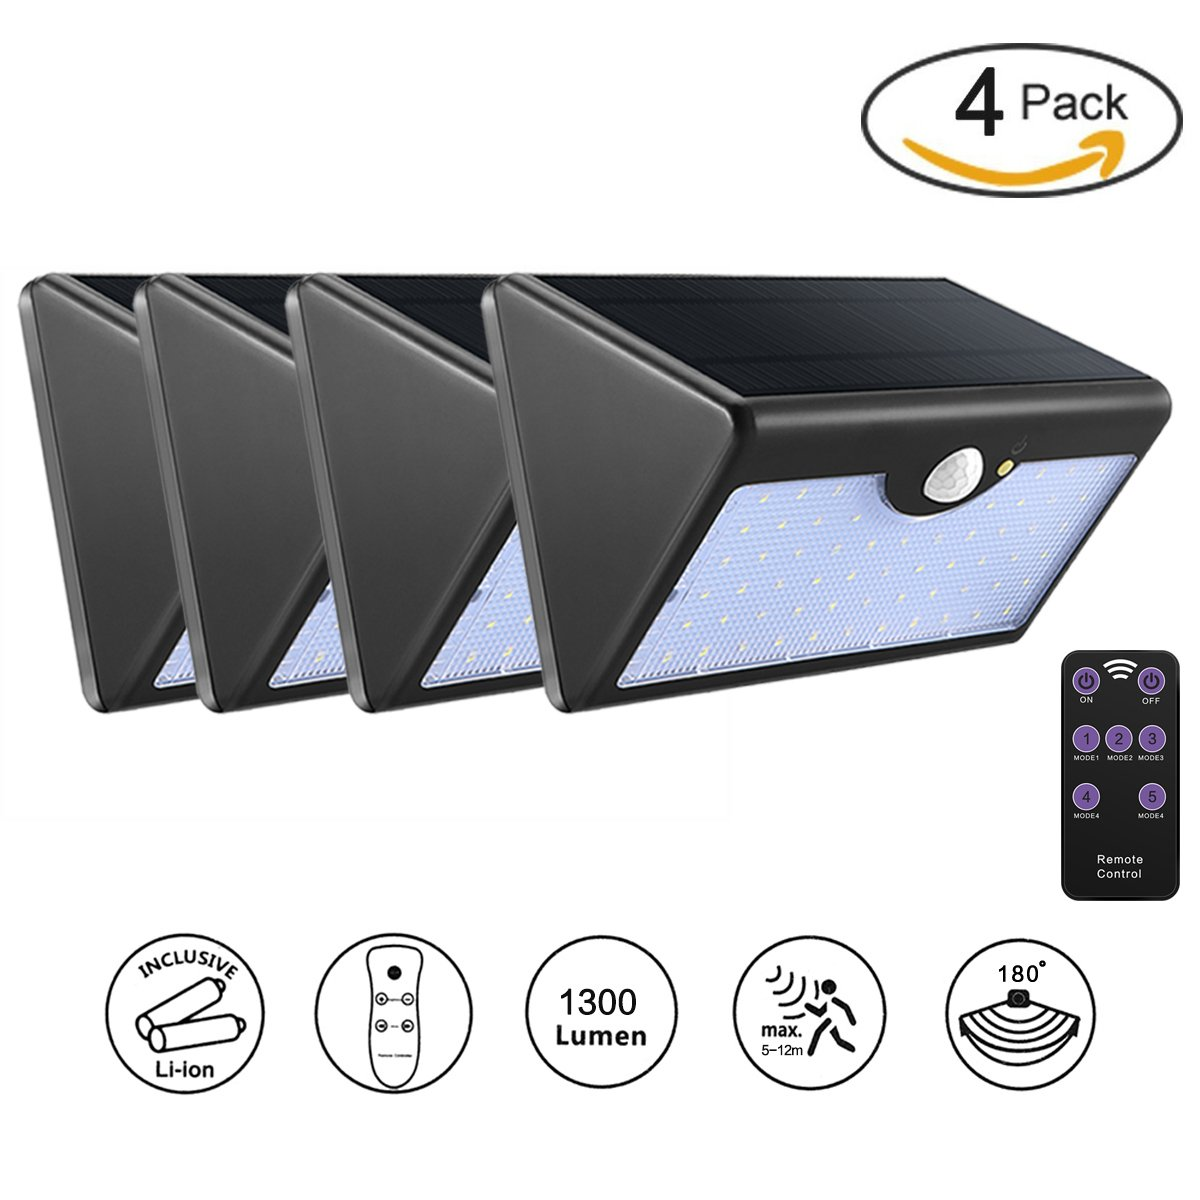 Abedoe Solar Lights Outdoor 1300 Lumen Super Light with 5 Modes Remote Control, 60 LED Waterproof Motion Sensor Security Wall Light, Automatically ON at Night for Garden Patio Path Fence (Pack of 4)